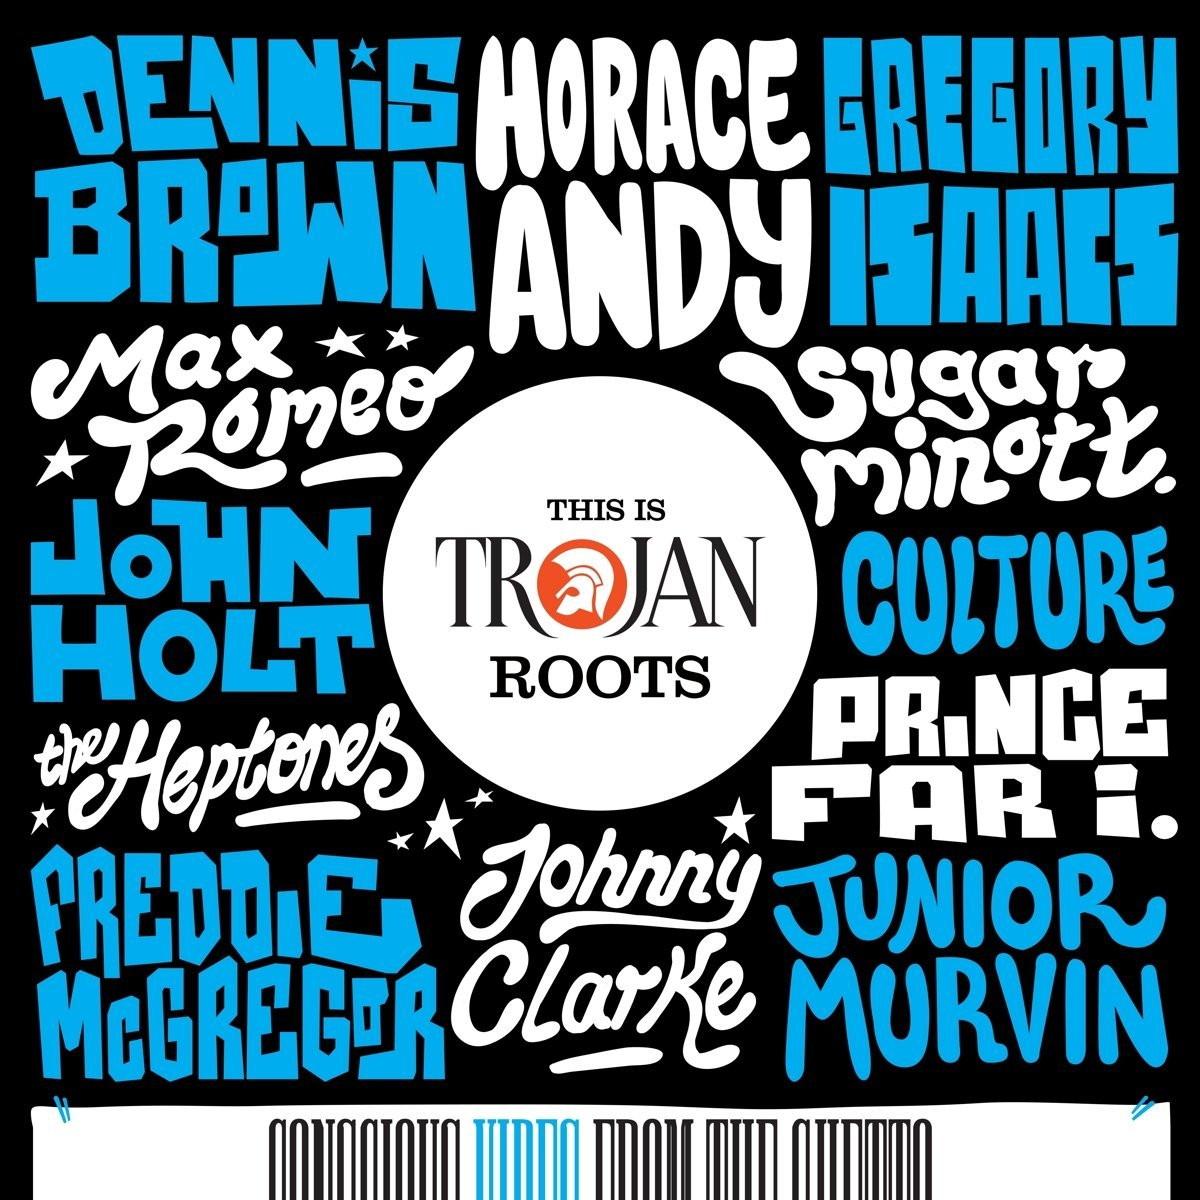 This is Trojan Roots (Trojan Records)